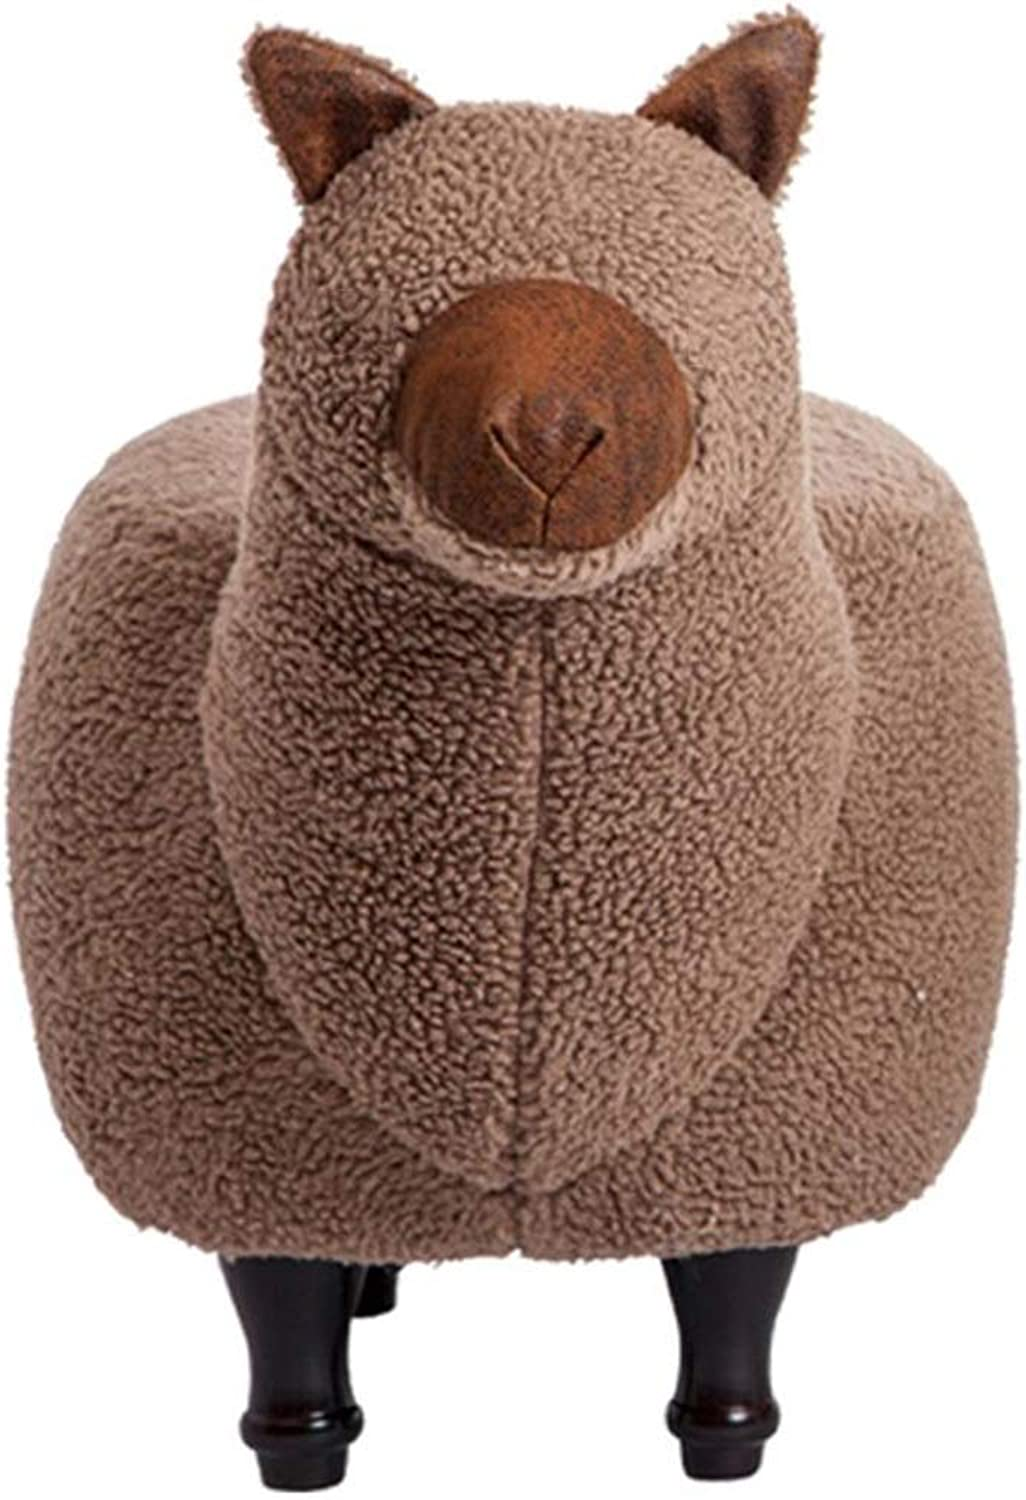 BYPING Pouffes and Footstool Bedroom Camel Cleanable Storage Can Sit Cotton Breathable 2 Styles, 2 colors (color   Brown, Size   50x33x70CM)